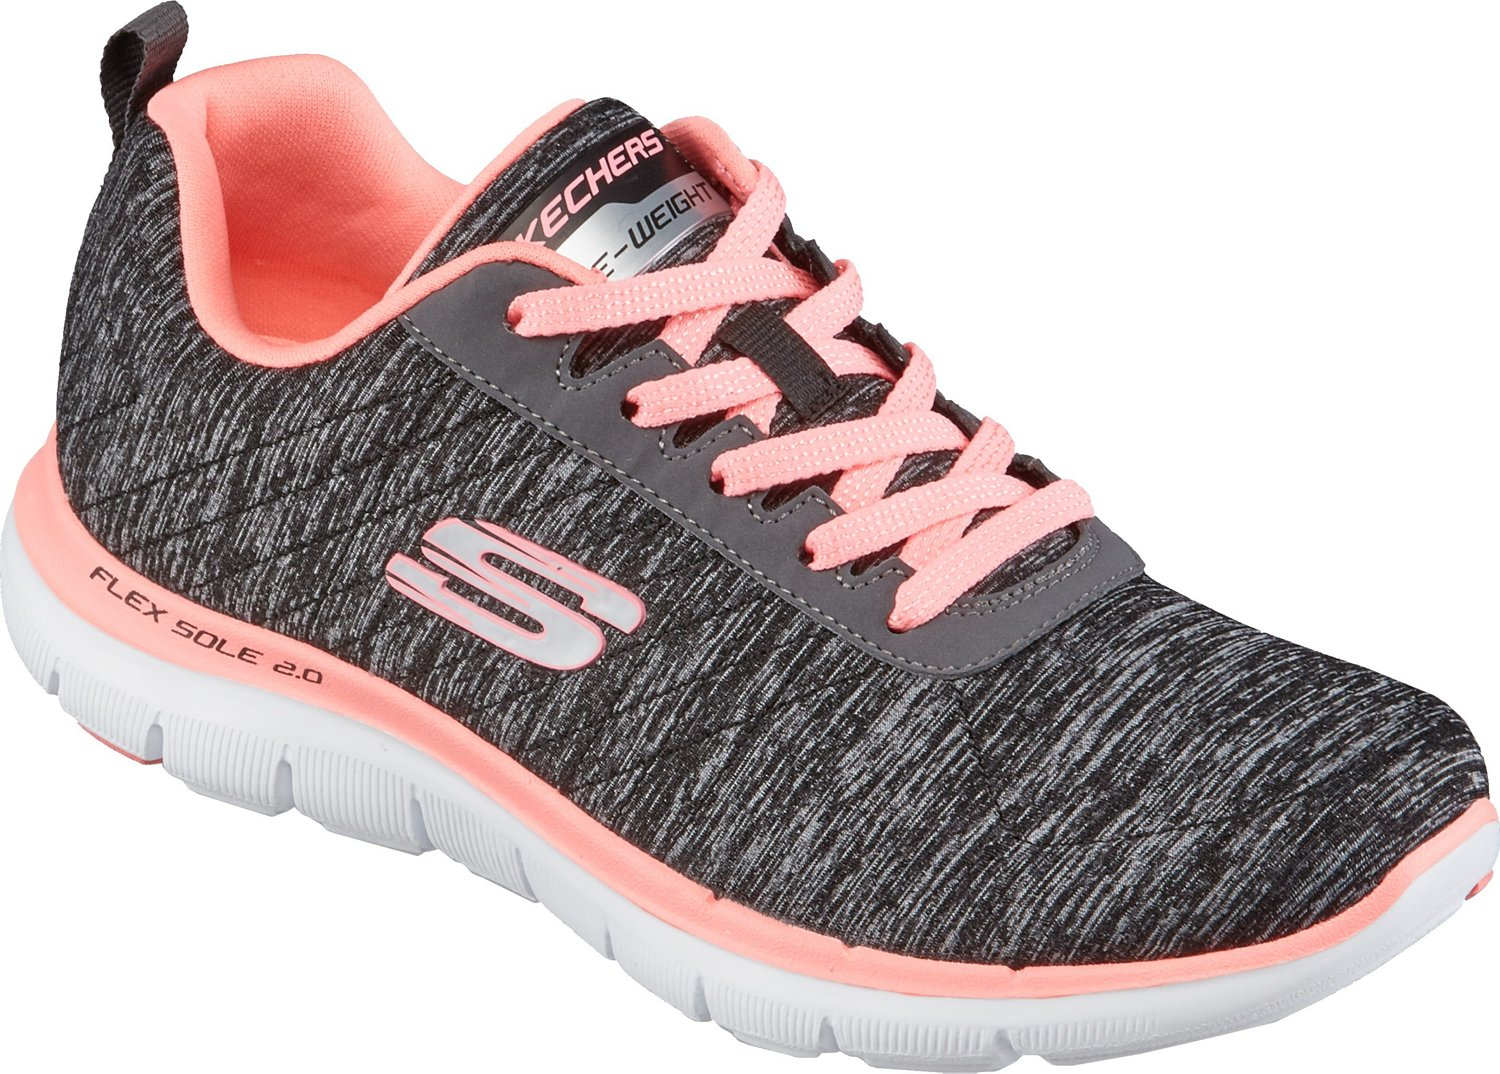 Display product reviews for SKECHERS Women s Flex Appeal 2.0 Training Shoes 66d0569c44e9f